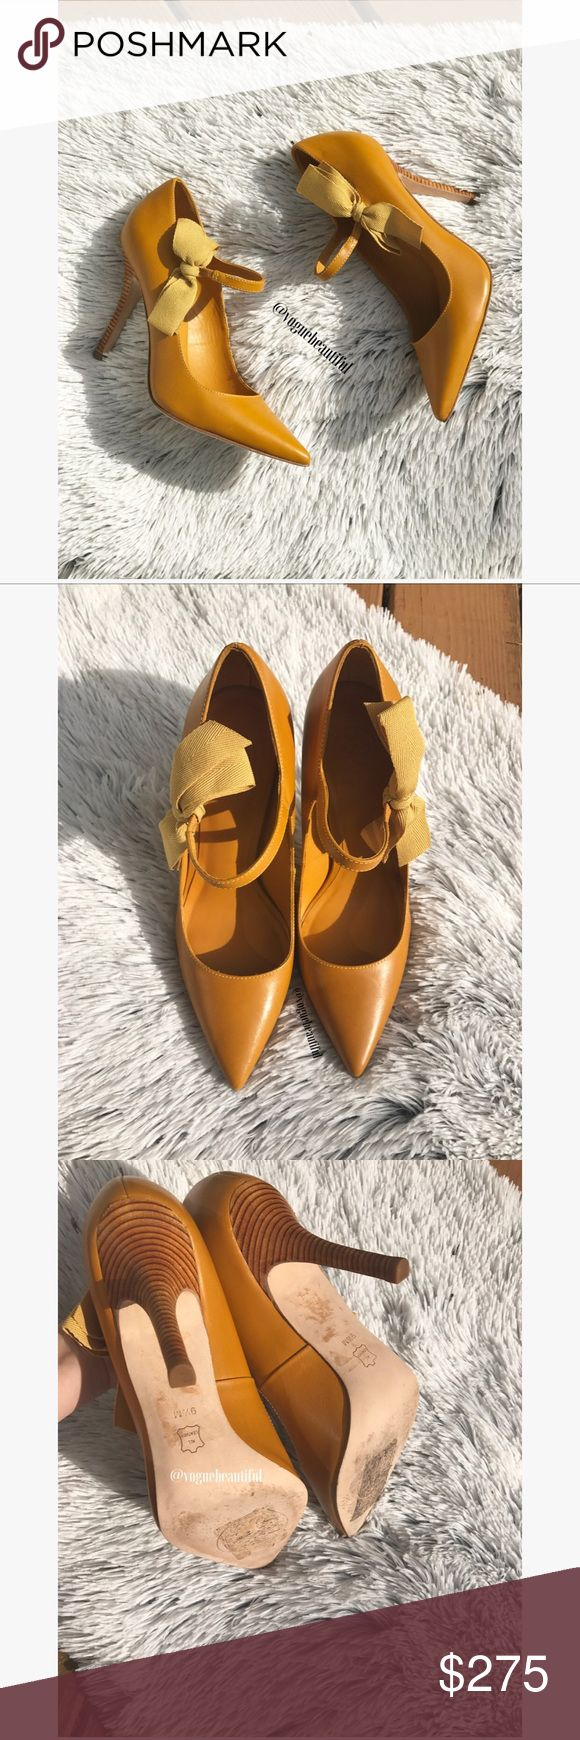 Tory Burch Beverly High Heels Absolutely stunning, 100% authentic Tory Burch Beverly heels in golden yellow (mustard color) • Perfect for fall and for upcoming holiday festivities • excellent condition with minimal wear • size 9.5 M • all leather • comes with original Tory Burch shoe box • heel height is 4.25 inches • You will love these! 😍😍😍✨✨✨✨ • 🚨NO TRADES🚨 Tory Burch Shoes Heels